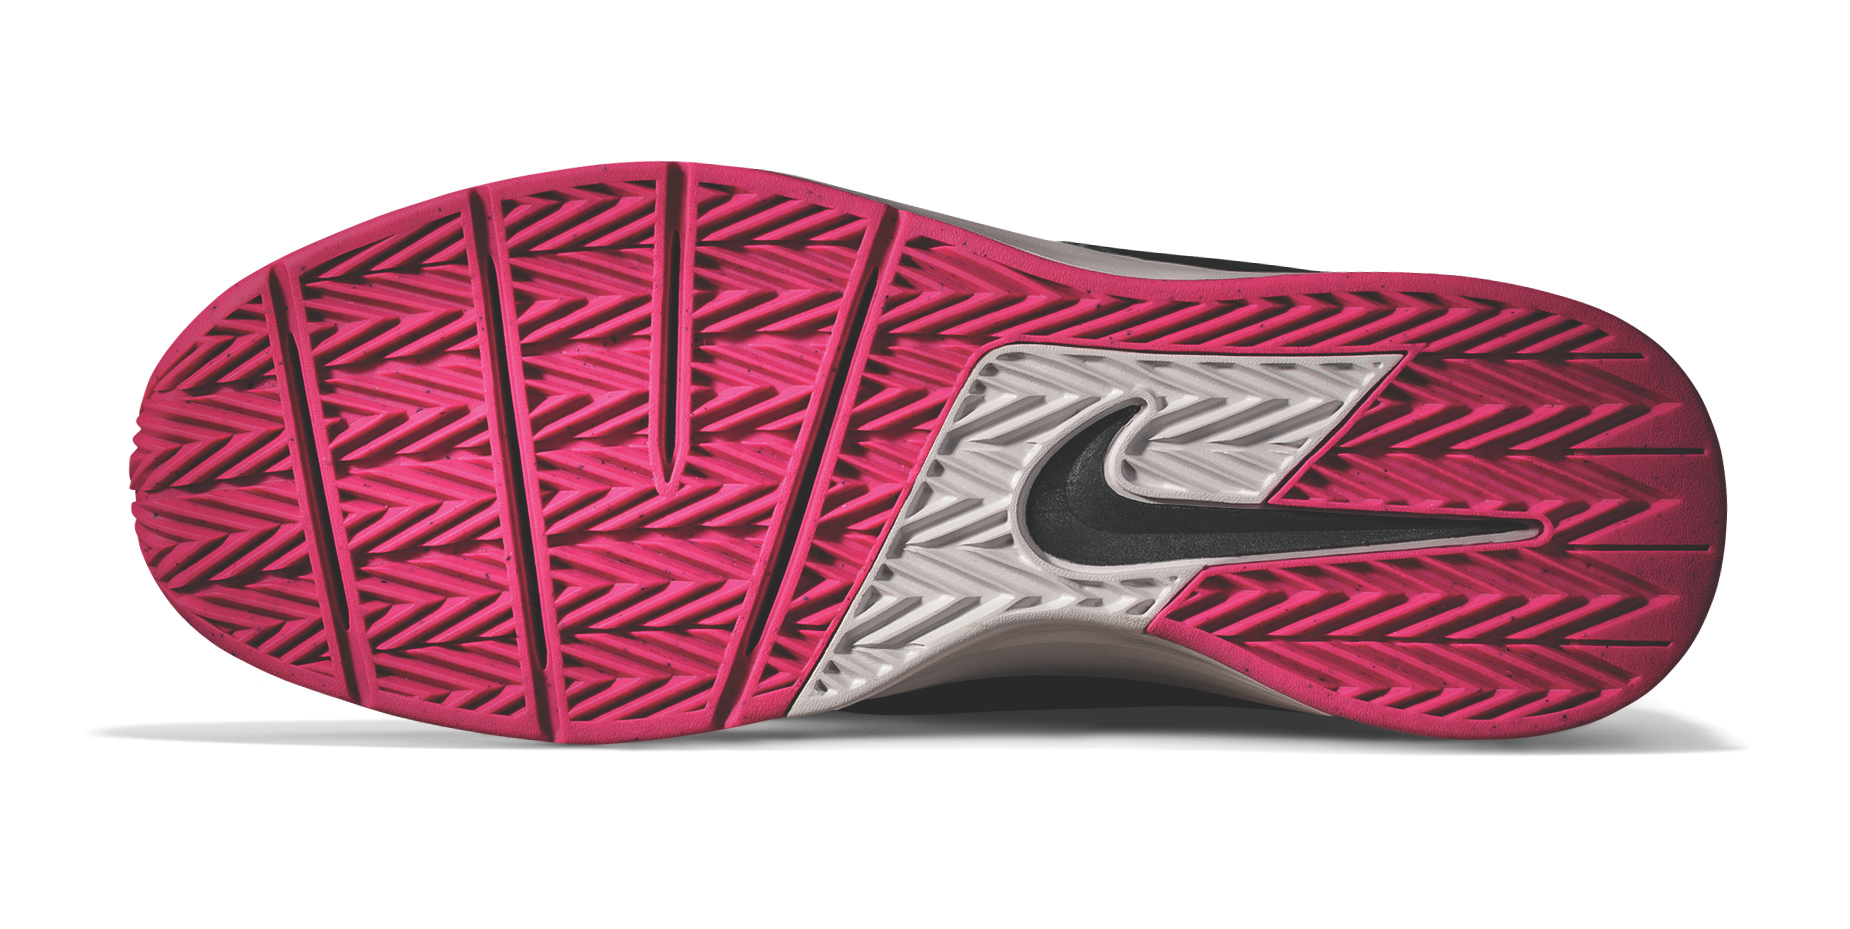 reputable site 70ab6 5e29c Nike SB Project BA Shoes for Skaters by Skaters - Nike News